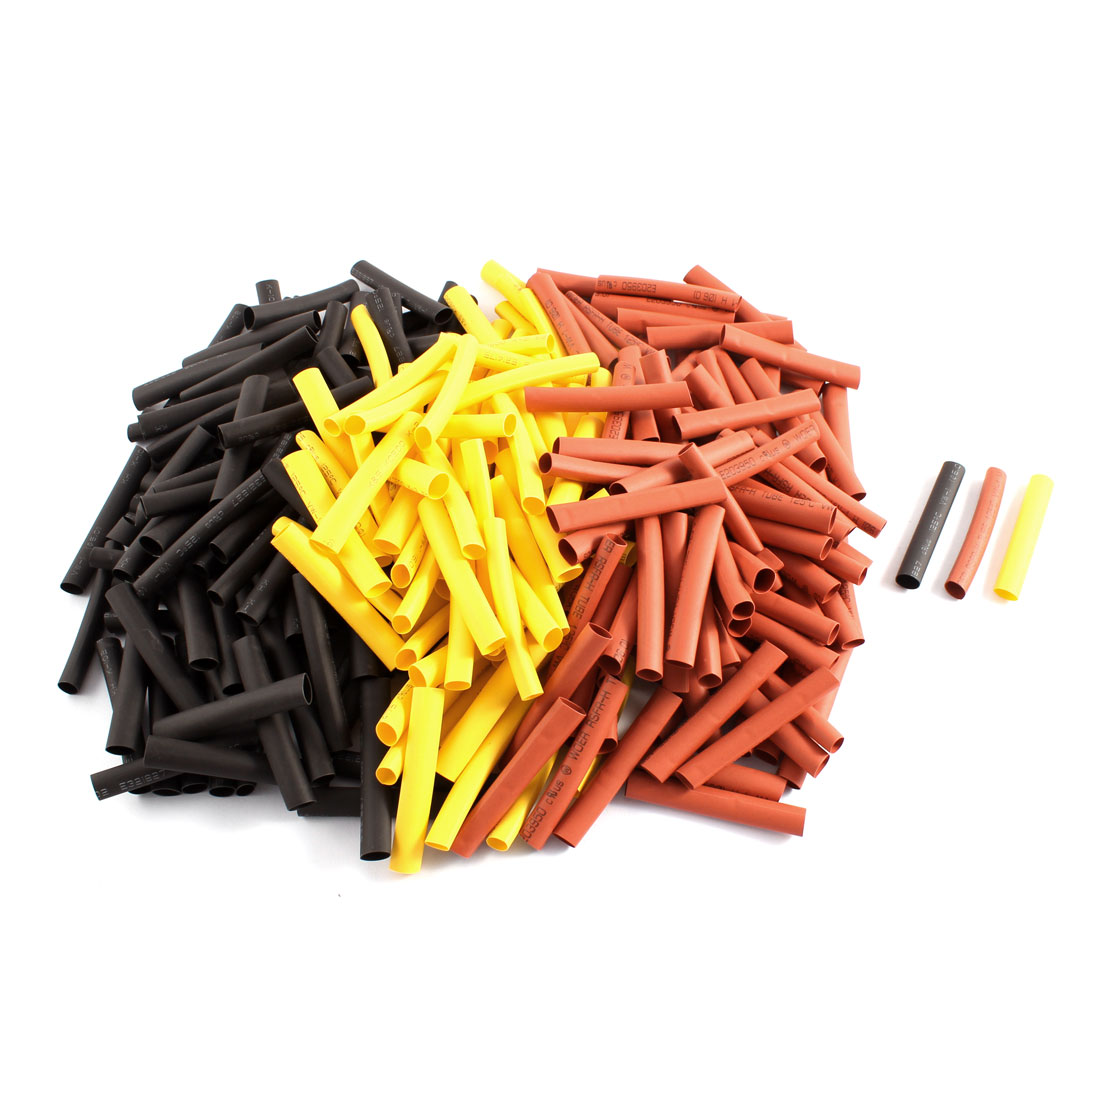 300pcs 6mm Dia 2:1 Heat Shrink Tubing Shrinkable Tube Insulated Cover Cable Wrap